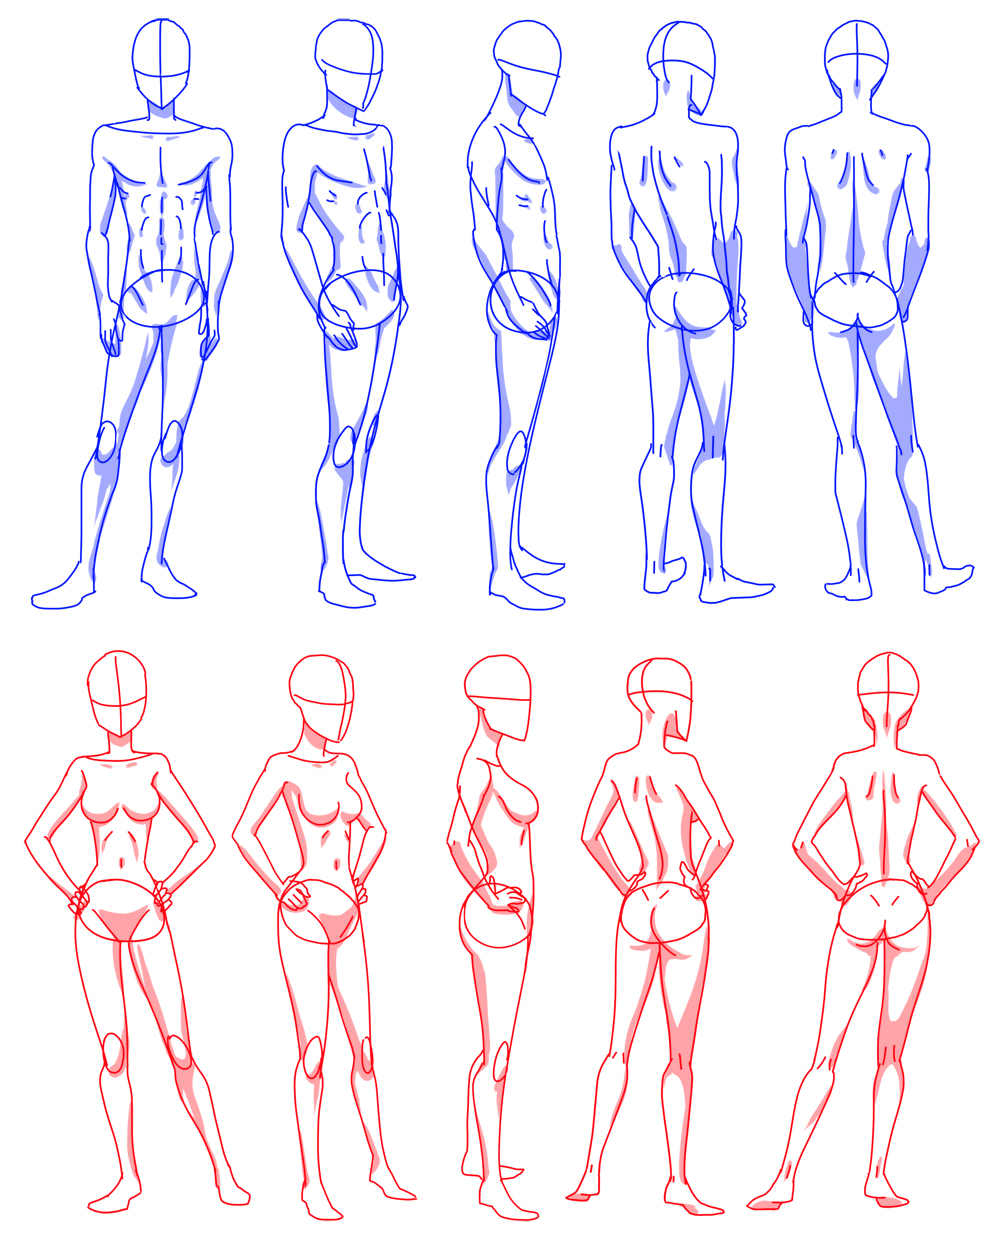 Body rotation by flipfloppery on deviantart for How to draw a body tumblr